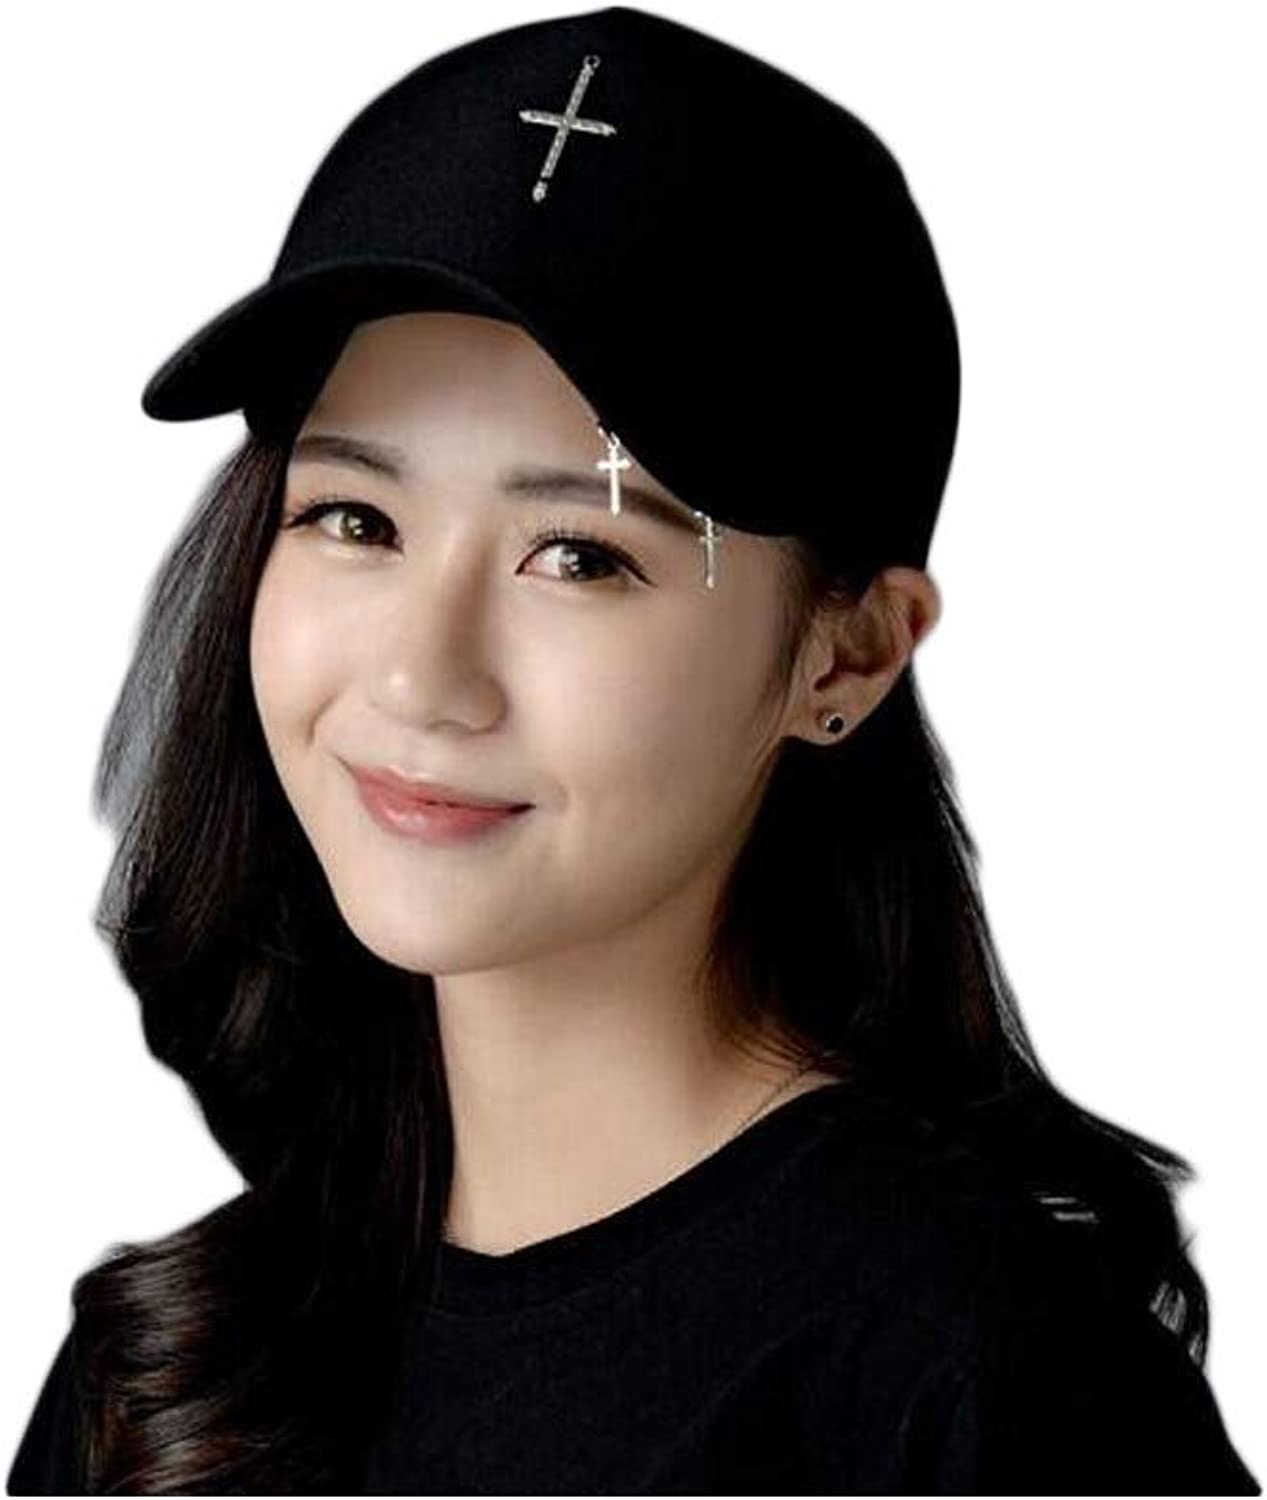 Guyuexuan Hat, Fashion Men's and Women's Dome Baseball Cap, Outdoor Sports Cap, Black 14  7.5CM, Perimeter 5559CM, The for Friends and Family